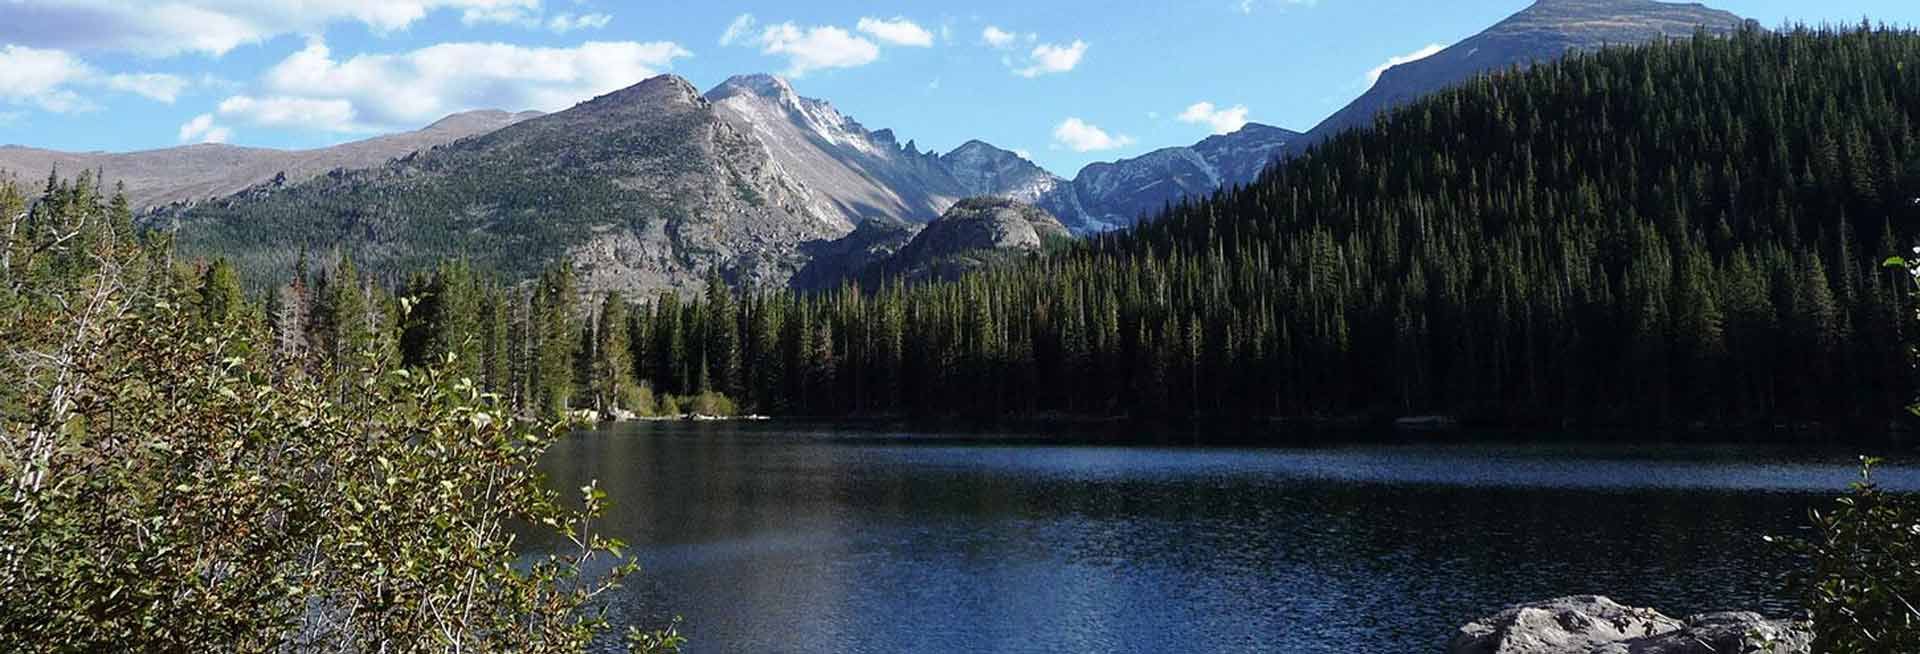 Rocky Mountains, forest and lake.